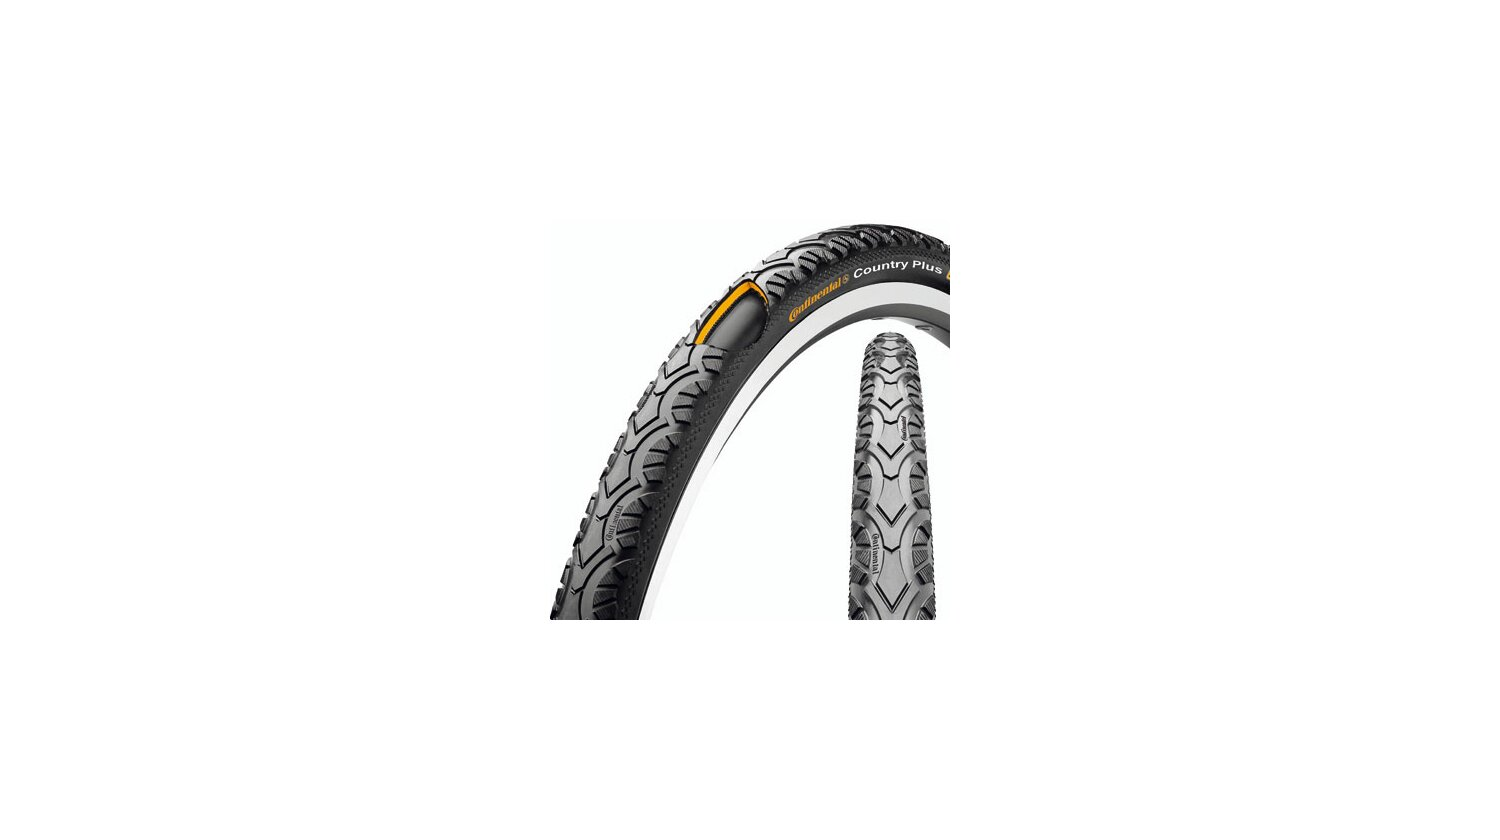 Continental Country Plus Reflex 28 Drahtreifen 37-622